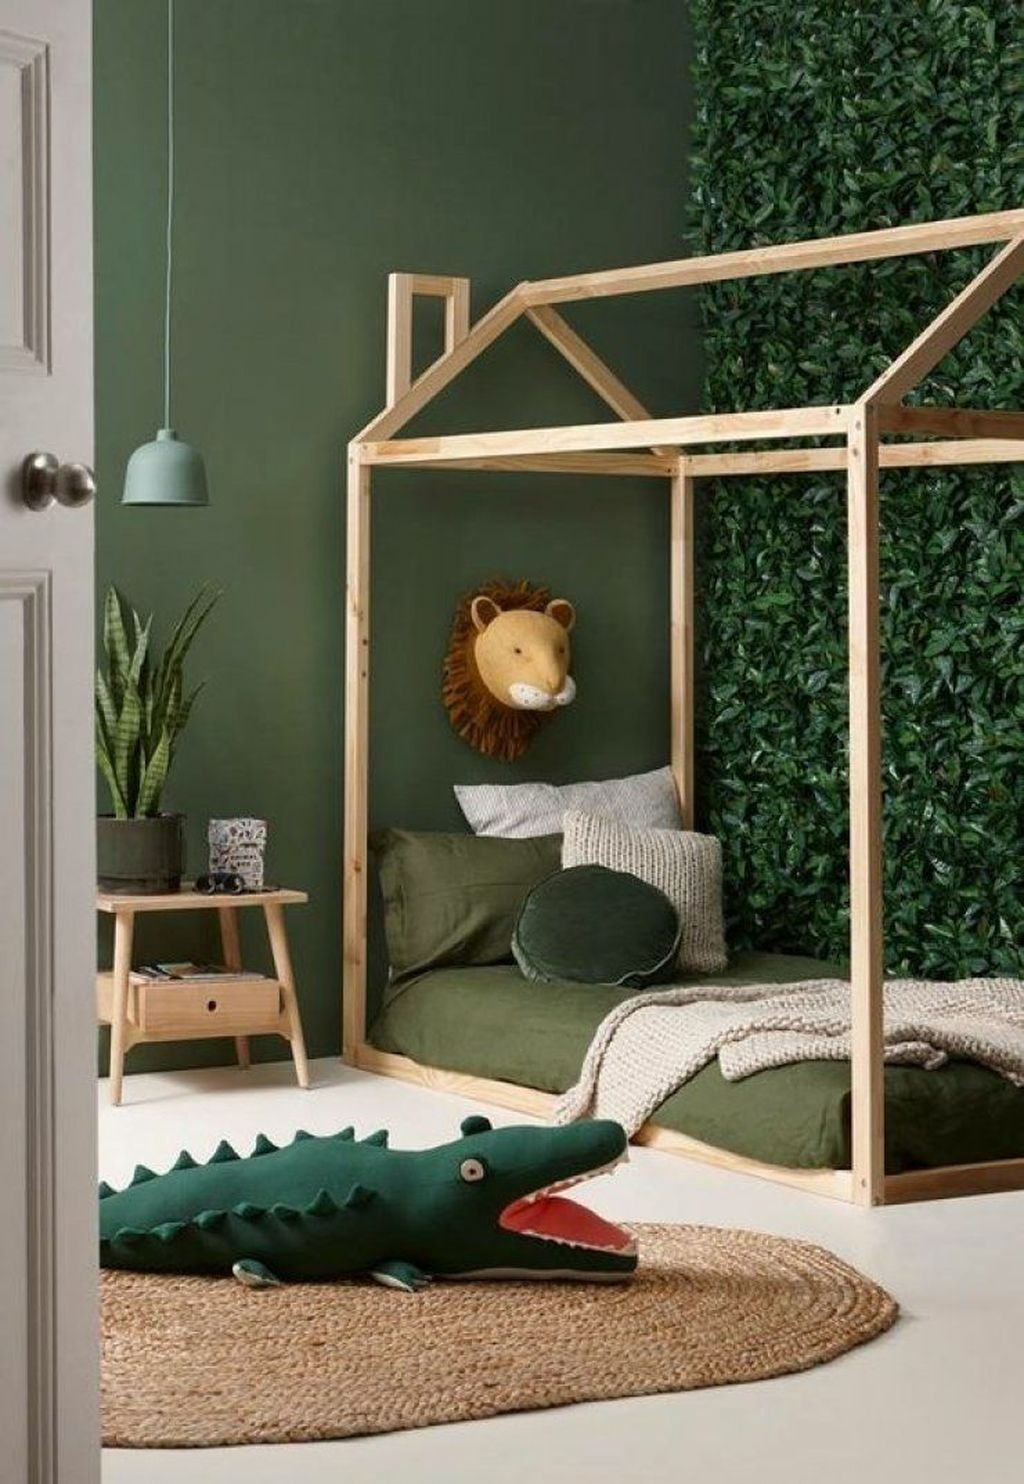 Inspiring Kids Room Design Ideas 48